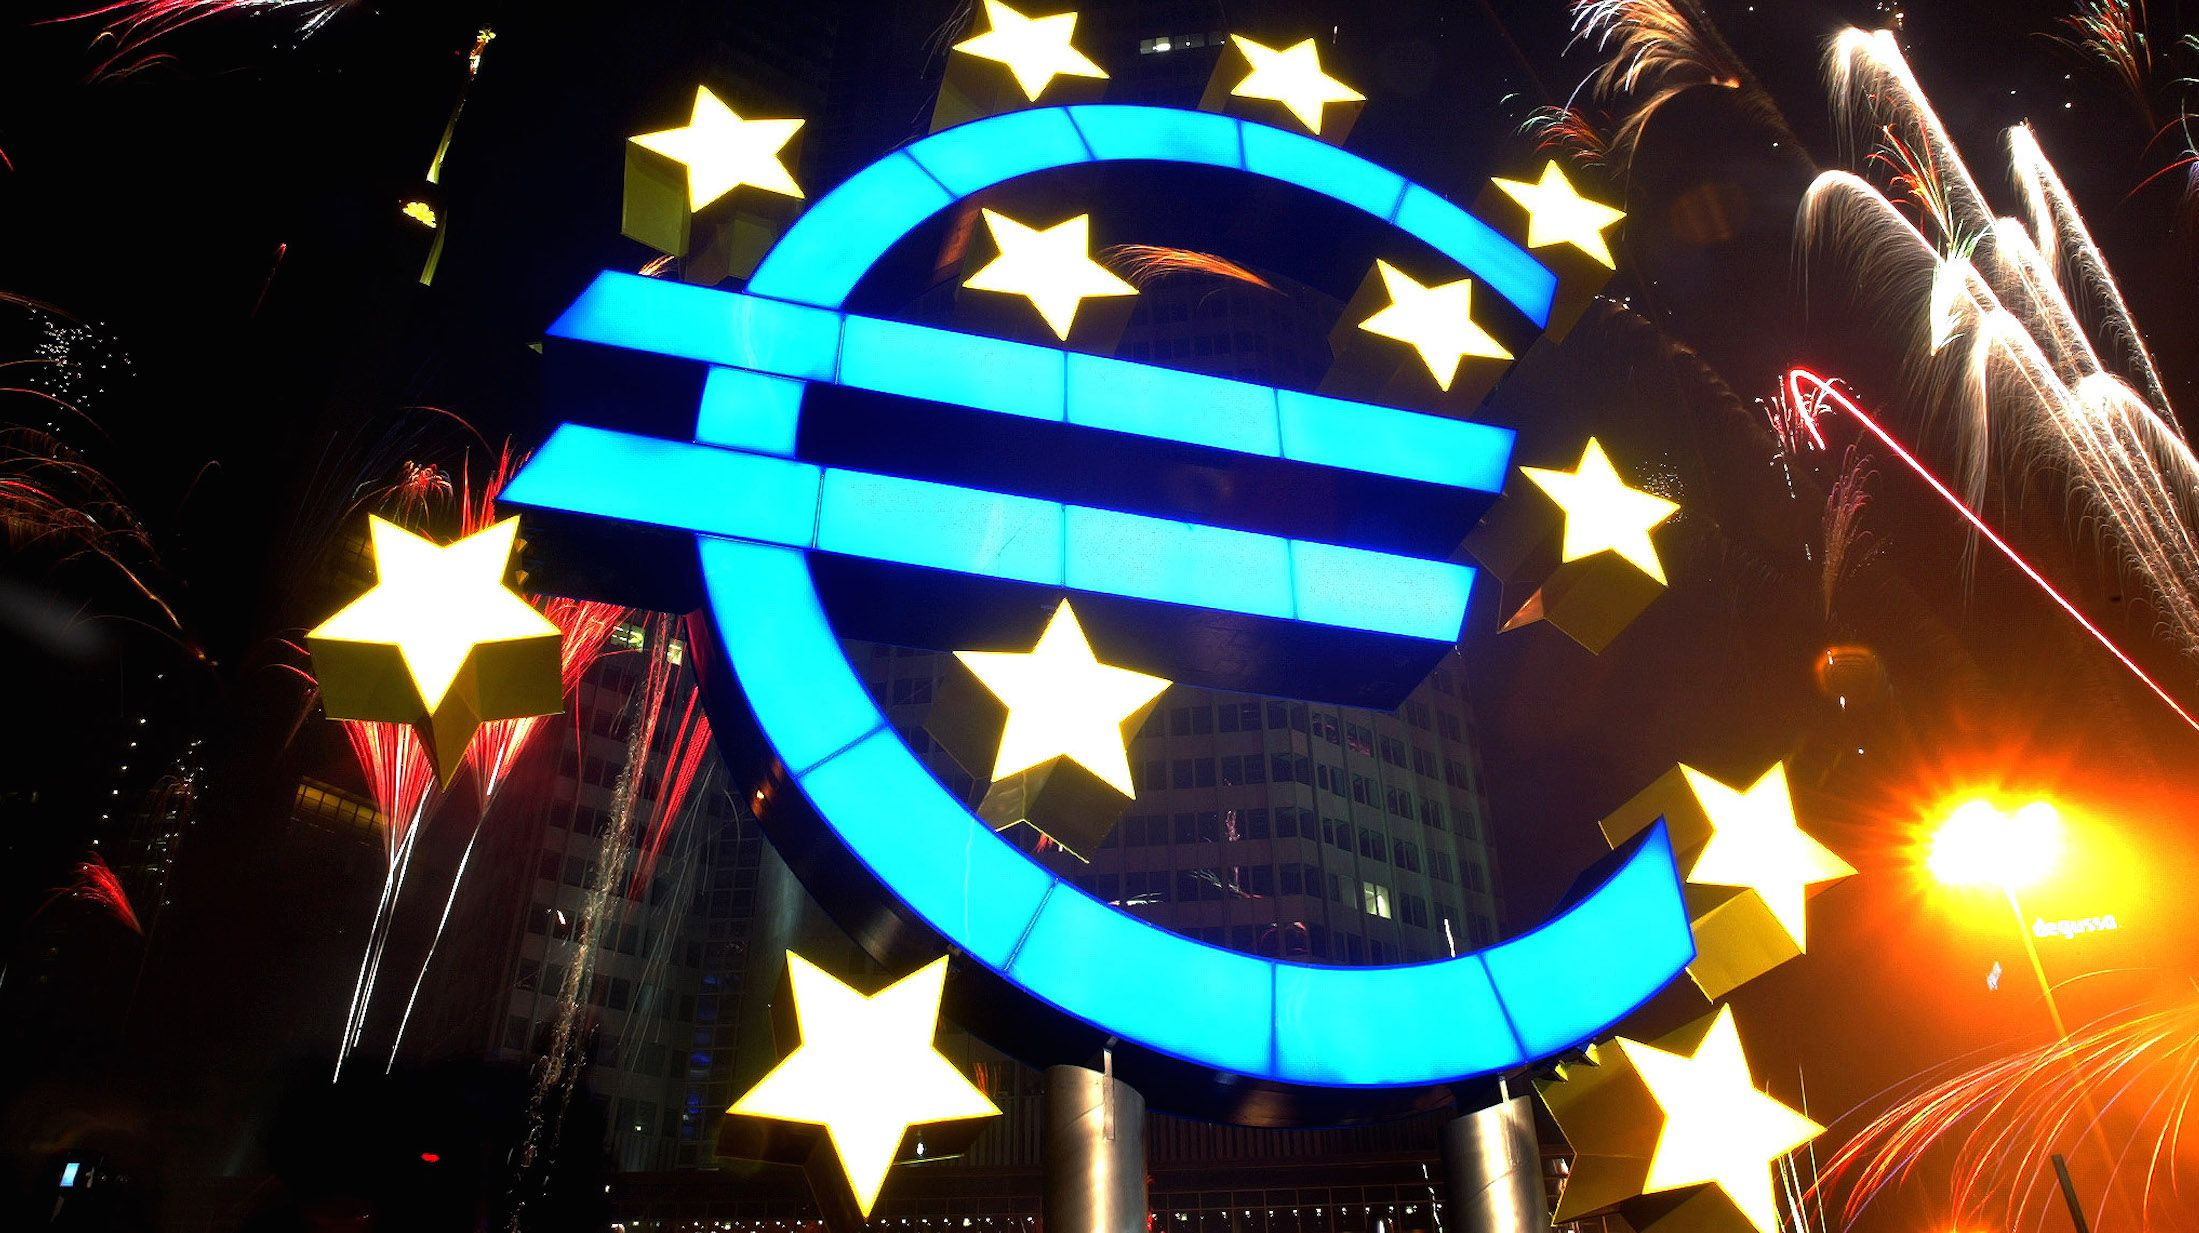 Fireworks illuminate the sky around a huge euro sculpture, designed by German artist Ottmar Hoerl, in front of the headquarters of the European Central Bank (ECB) in Frankfurt, January 1, 2002. Several thousand people in Frankfurt celebrated at a party on the streets around the ECB to welcome Europe's new currency, the euro. UNICS REUTERS/Kai Pfaffenbach REUTERS  KP - RTRBPKK